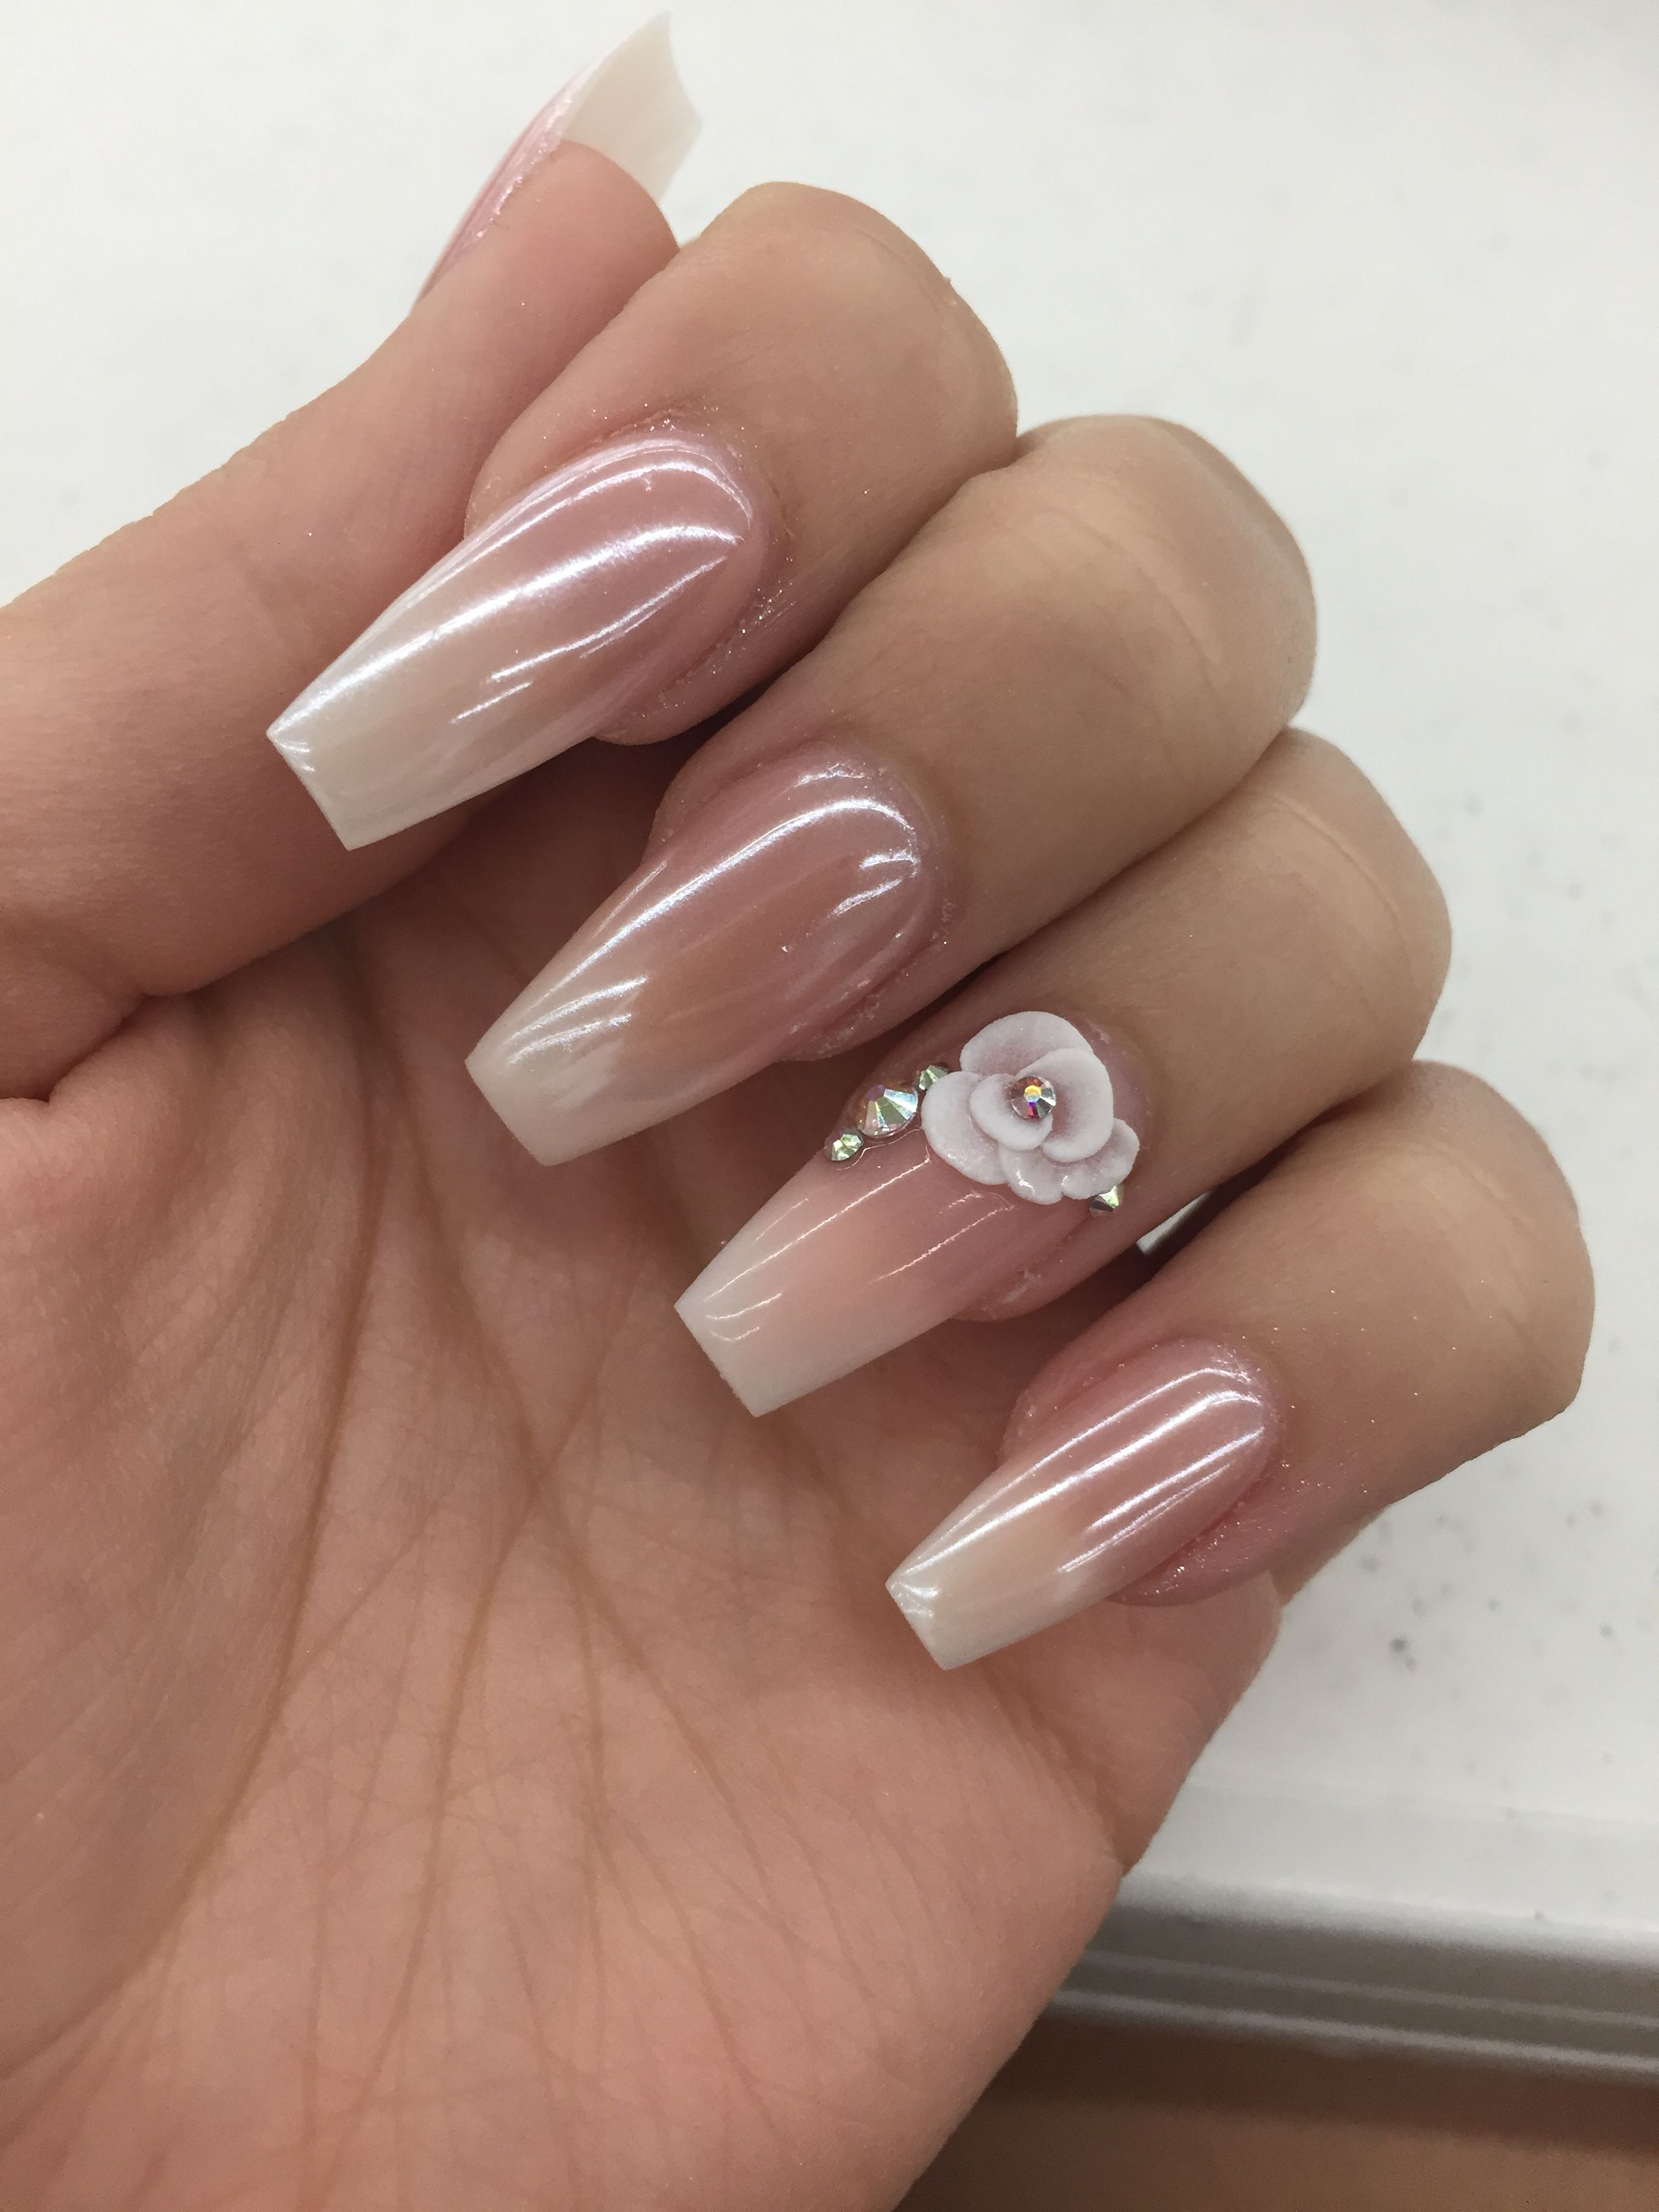 Pin By Cassandre Edwine Joseph On Nail Designs American Manicure Nails Gel French Manicure Flower Nails